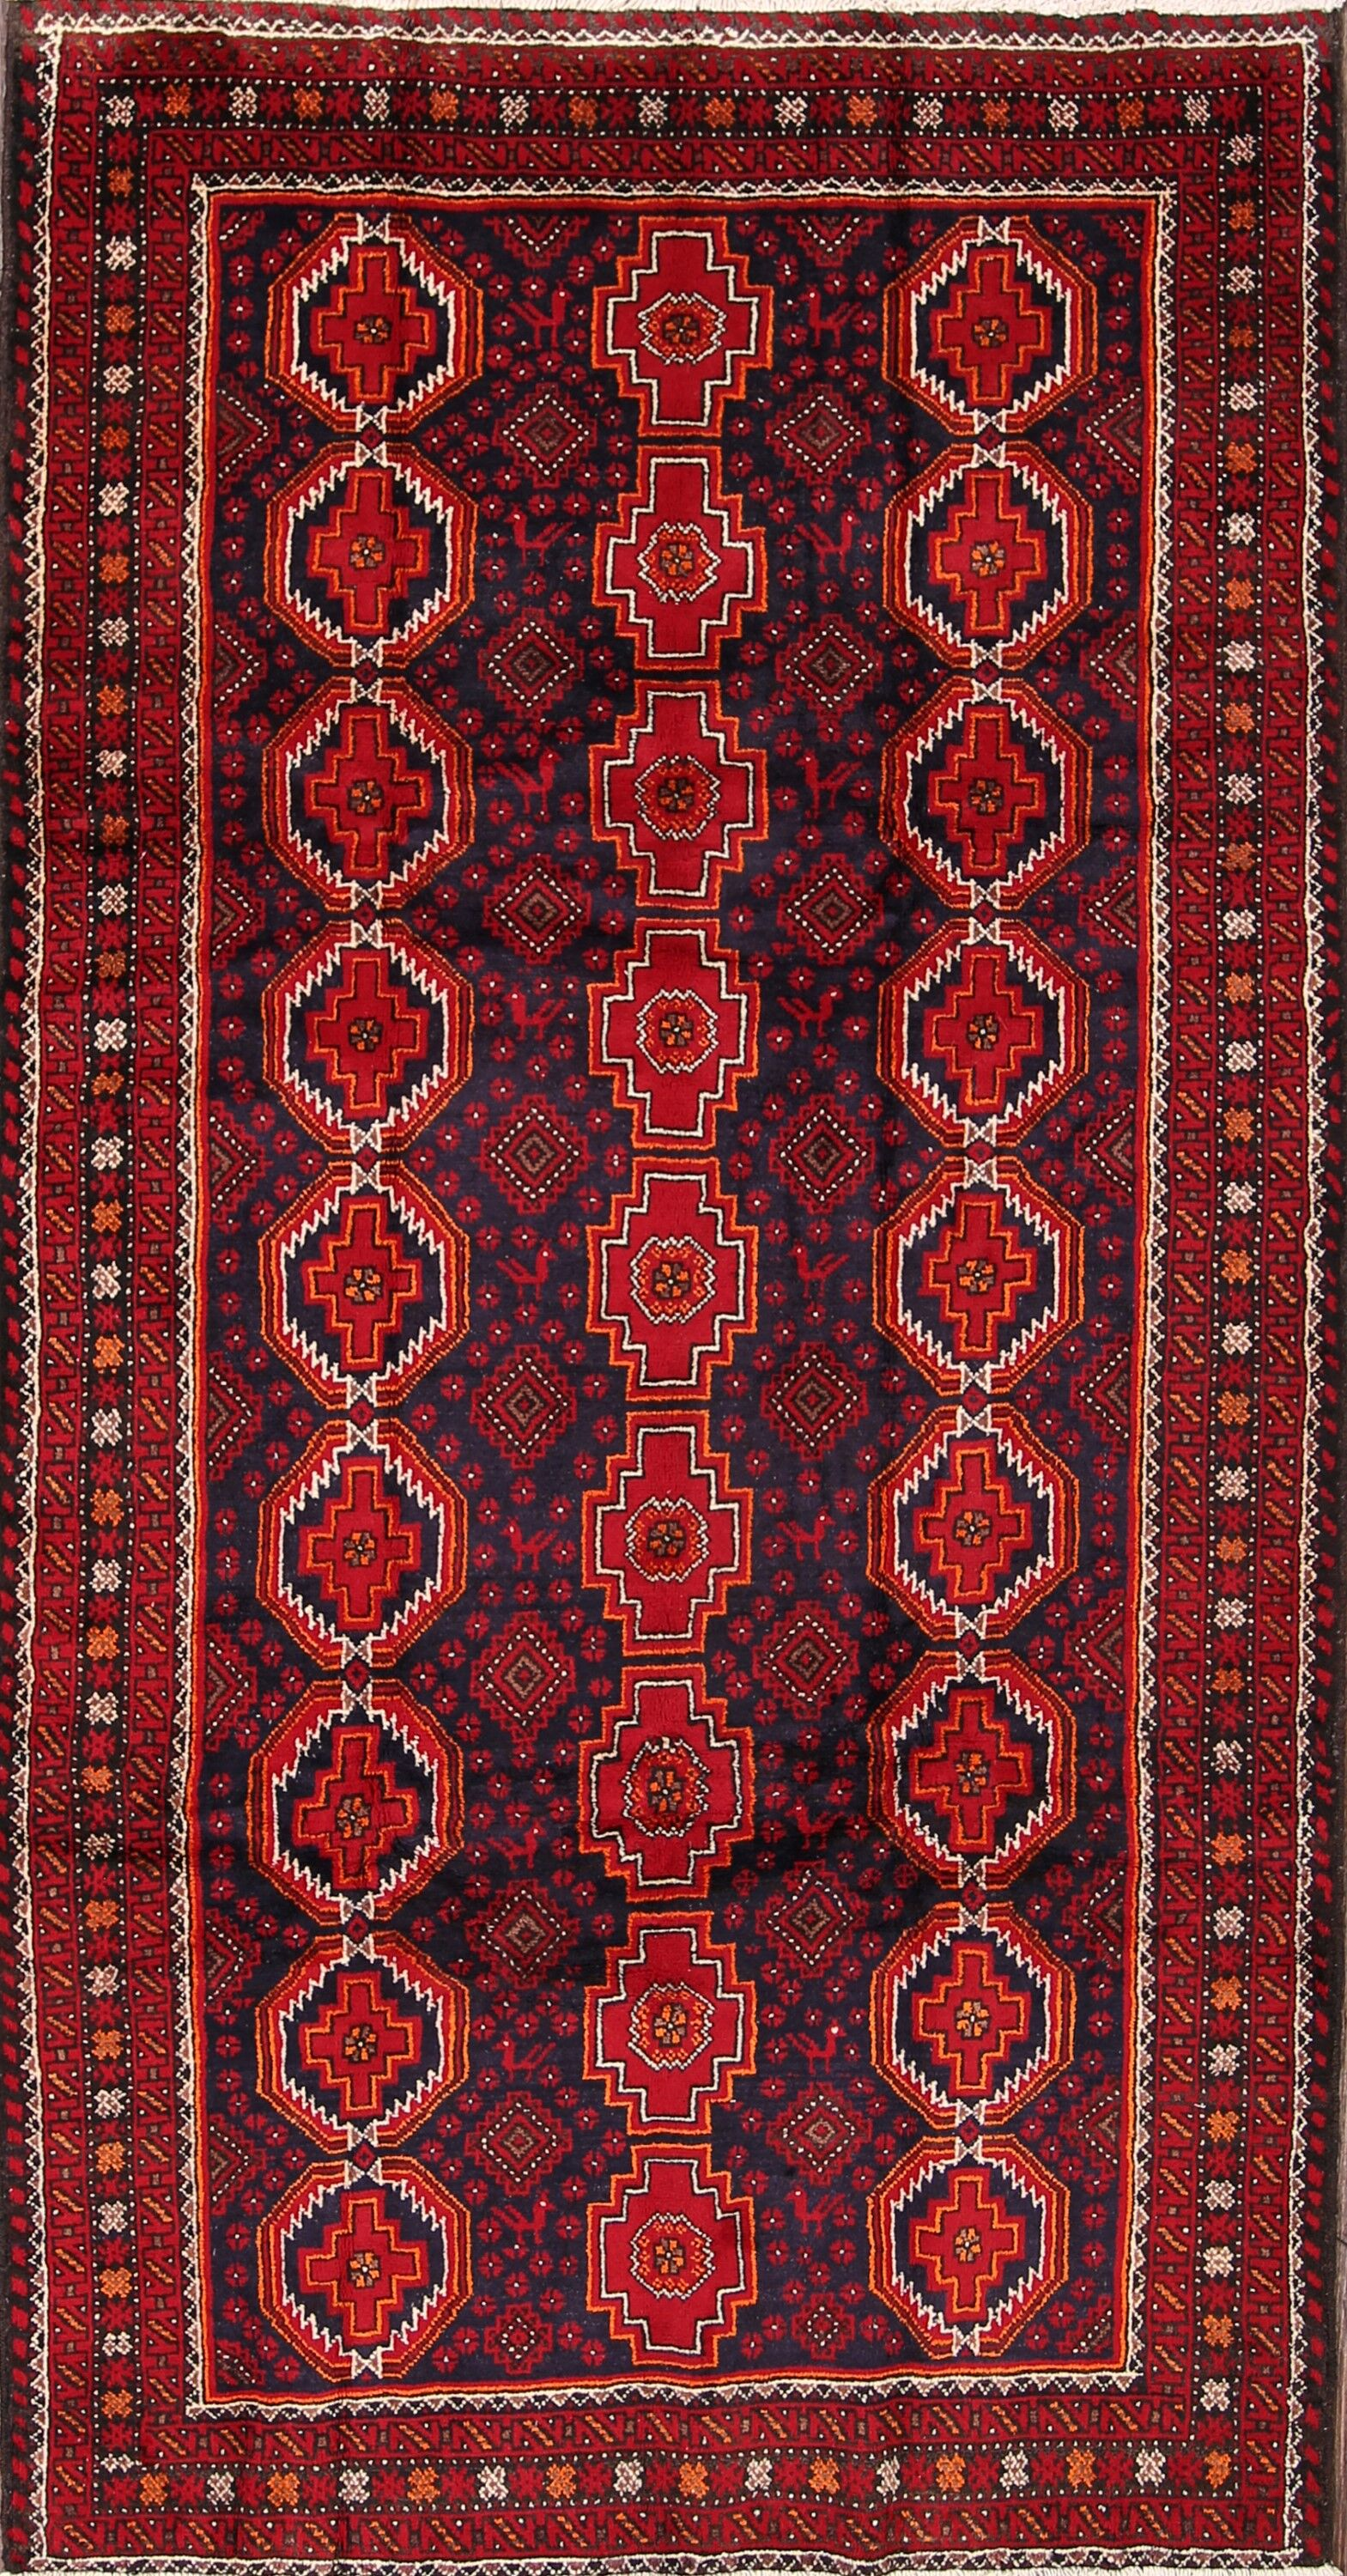 One-of-a-Kind Balouch Persian Traditional Hand-Knotted 4'6